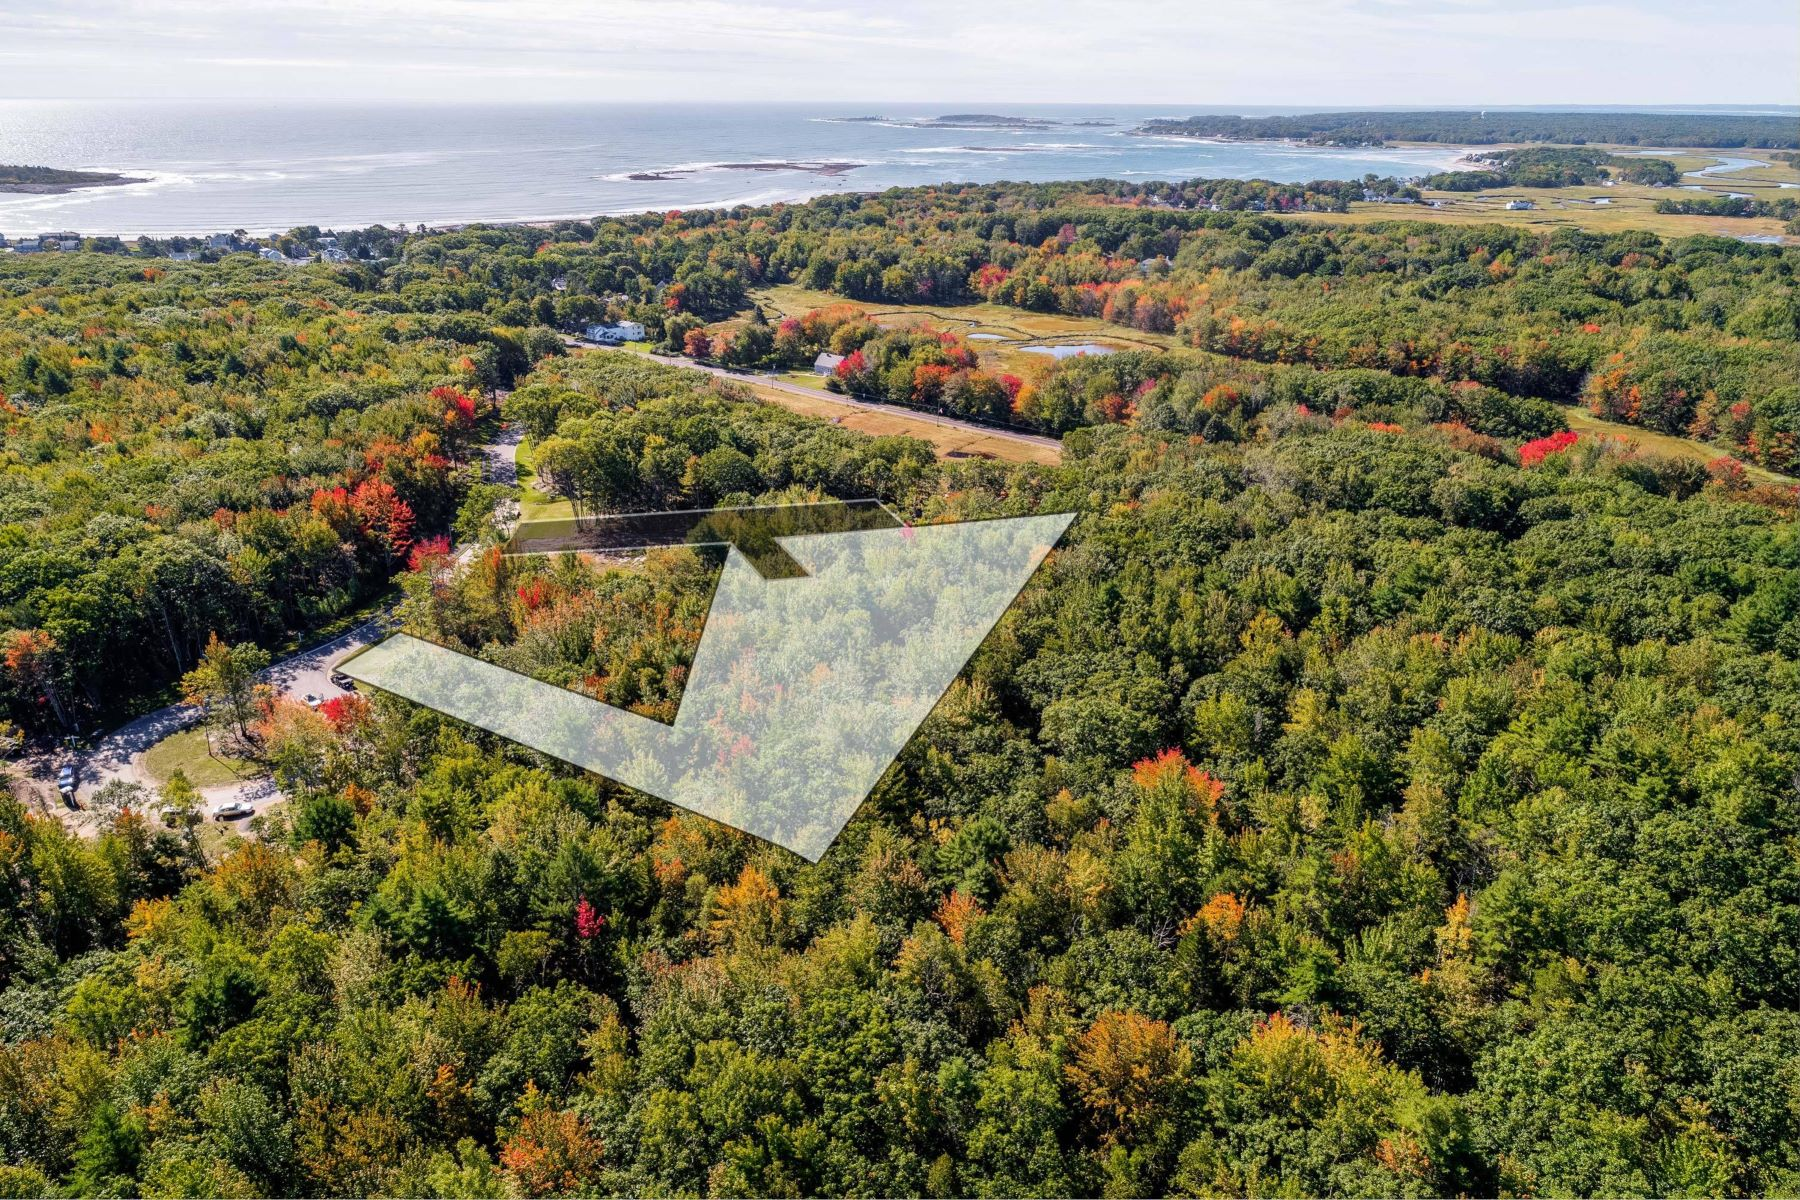 Single Family Homes for Sale at 11 Binnacle Hill Drive Kennebunkport, Maine 04046 United States